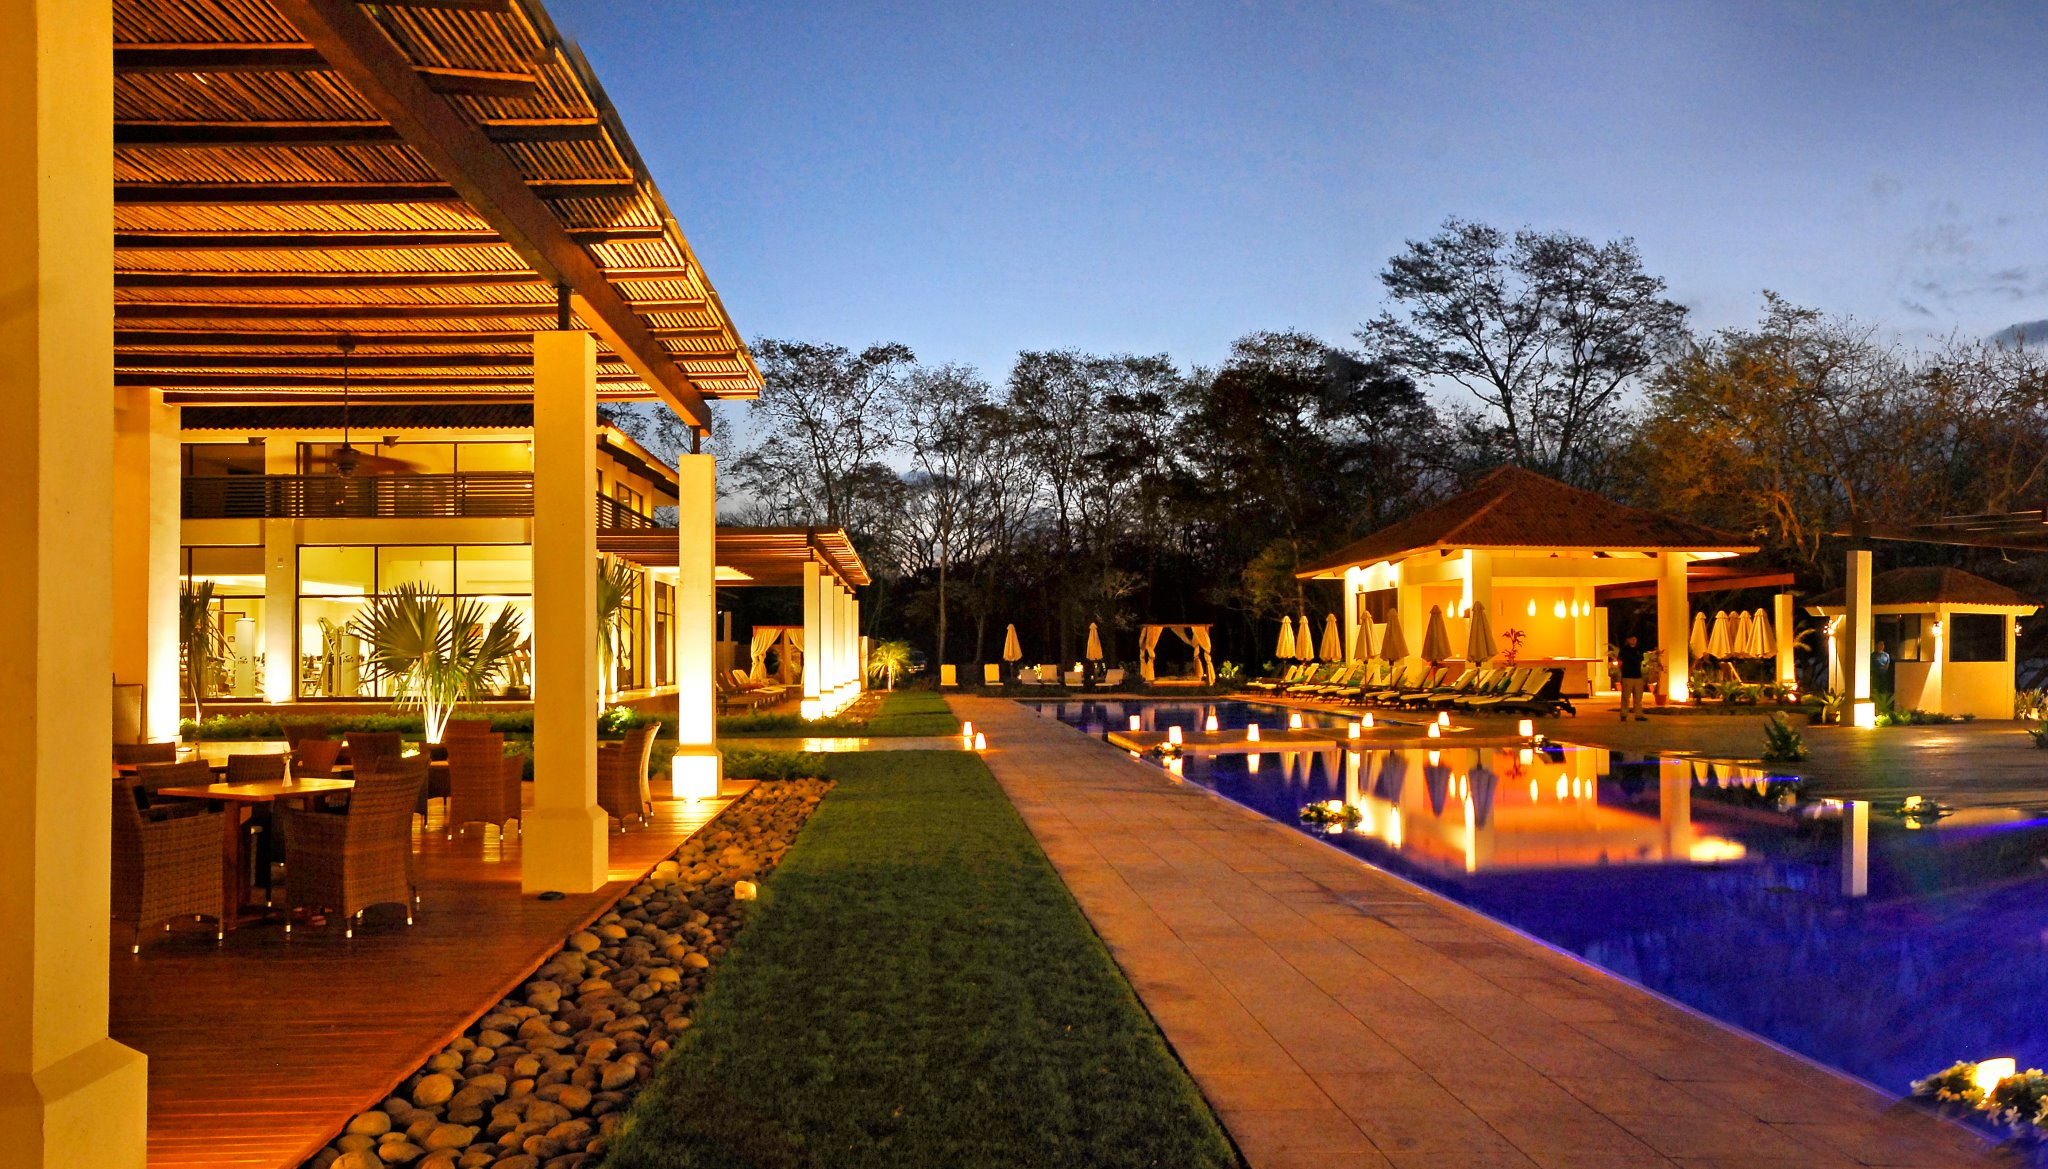 Reserva Conchal Beach Club at Dusk